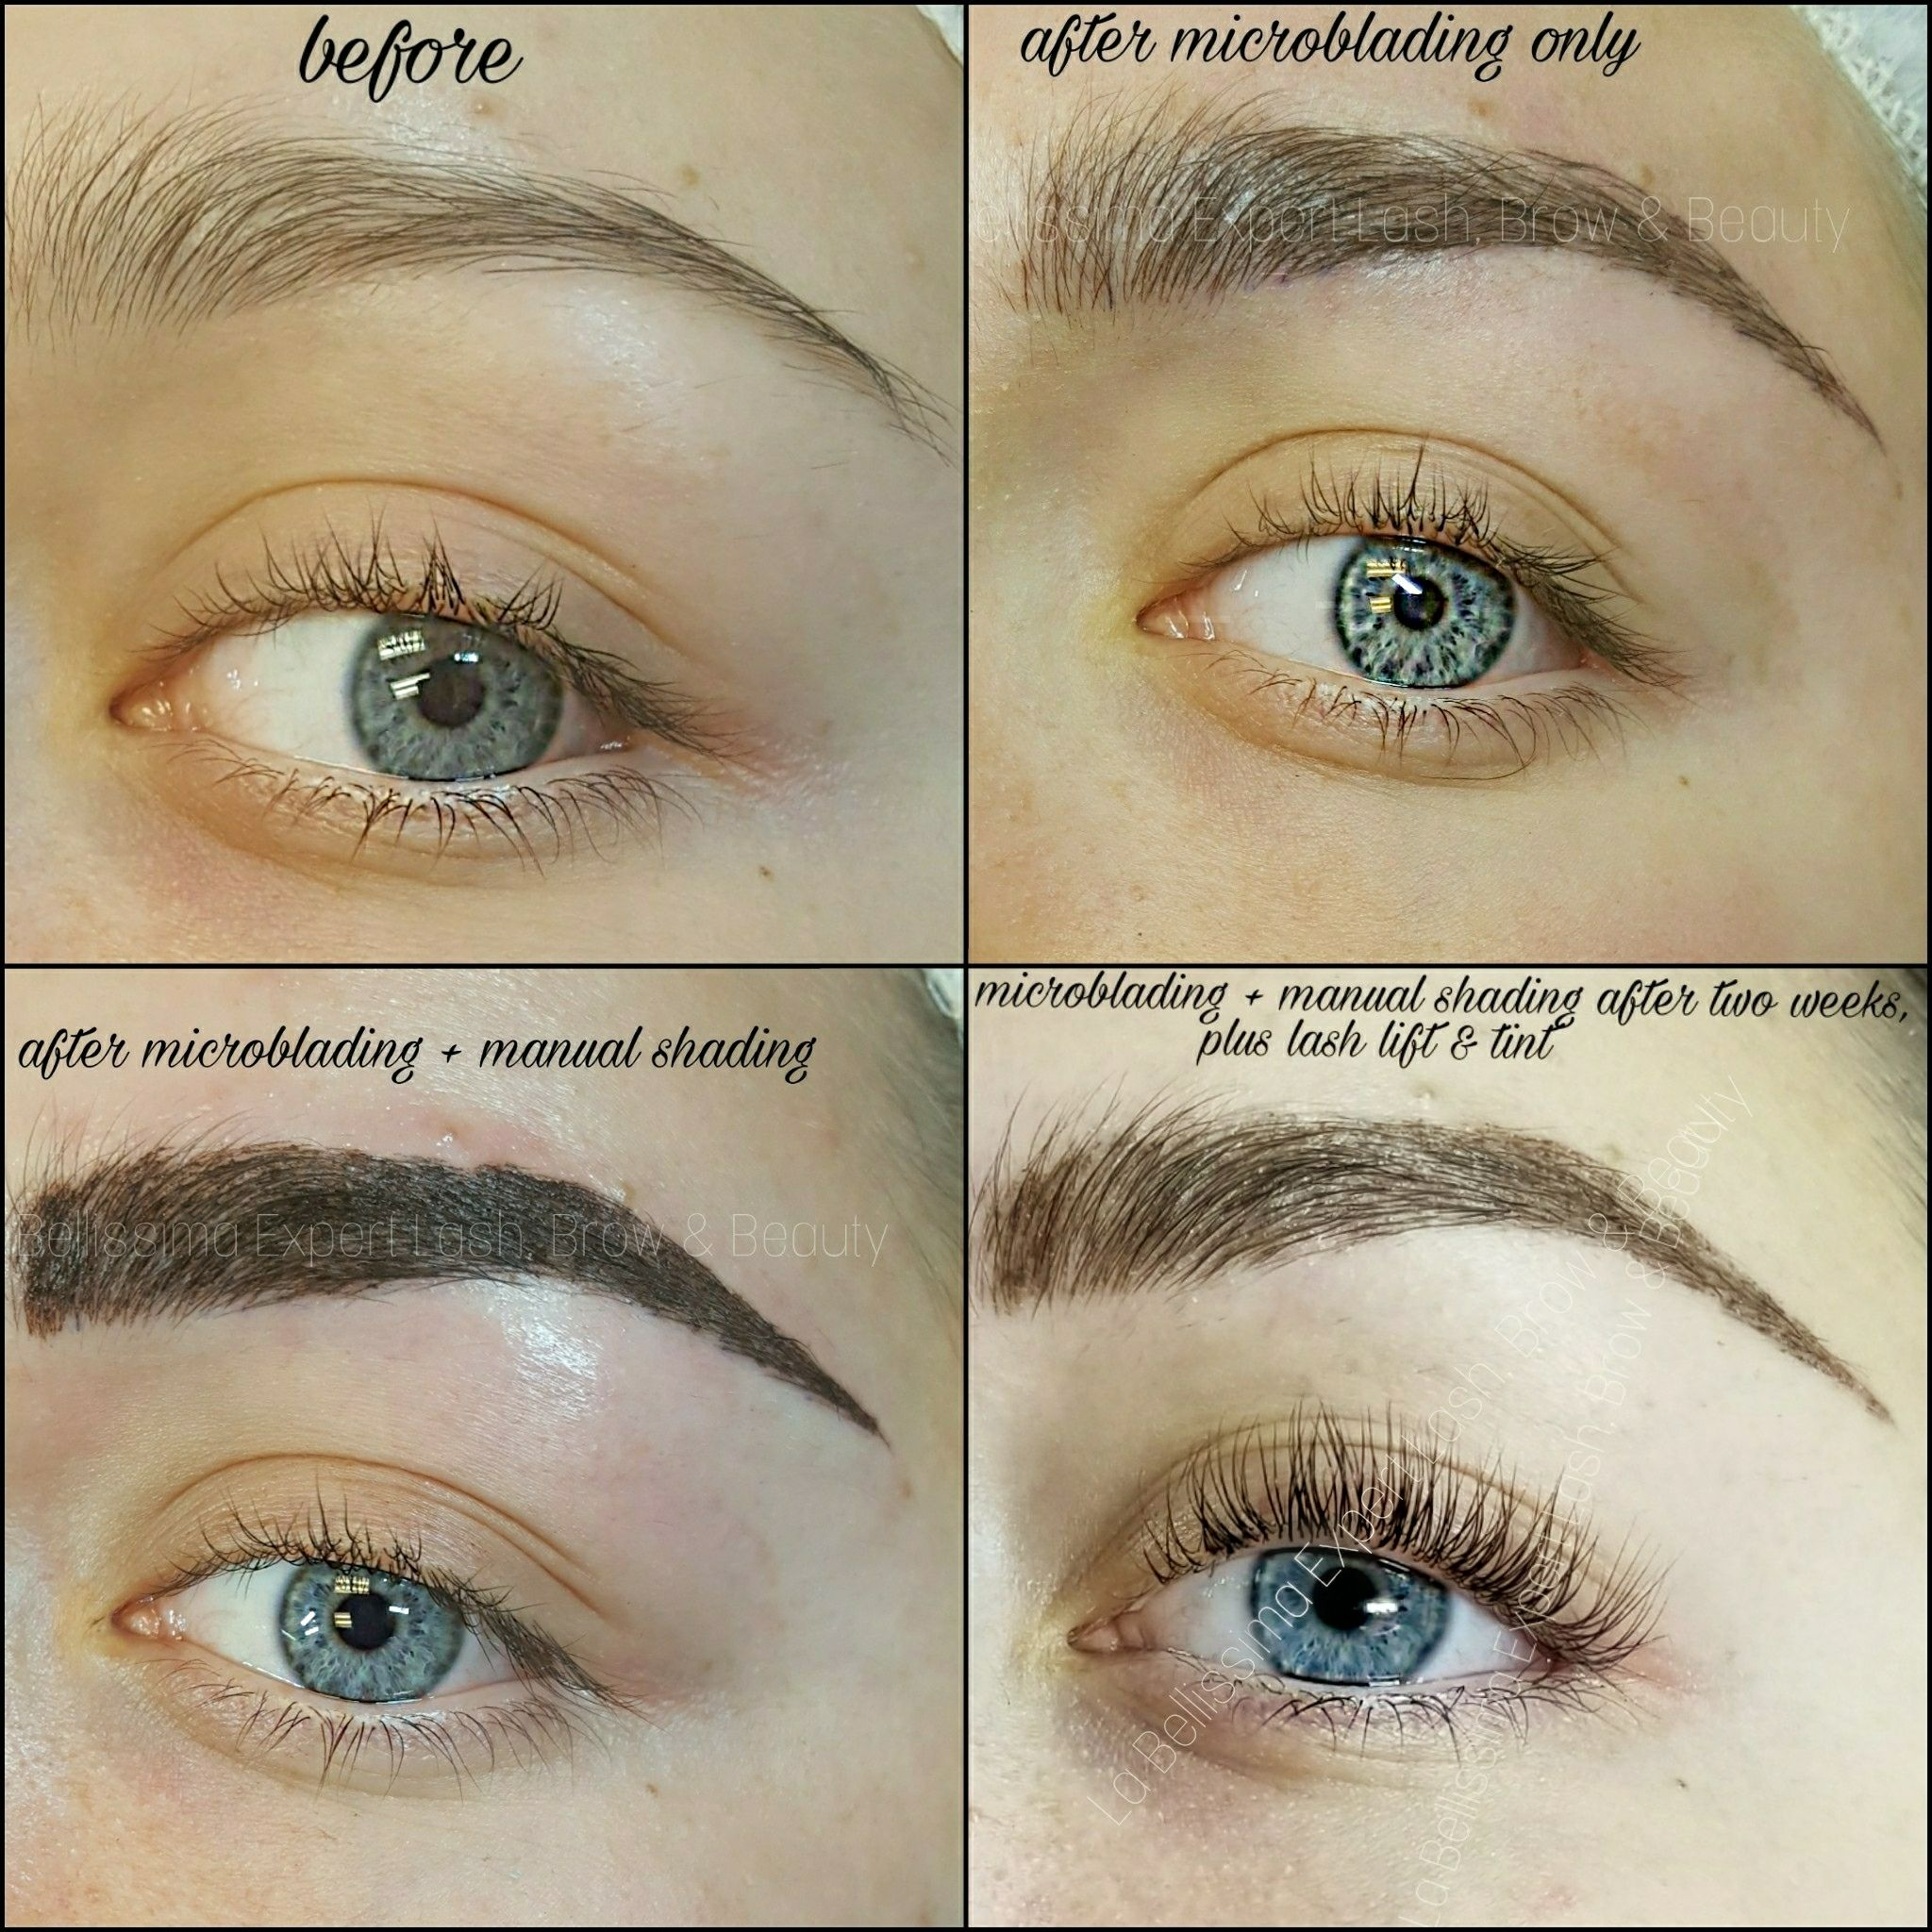 She Wants Very Strong Brows But See How Much They Faded In 2 Wks